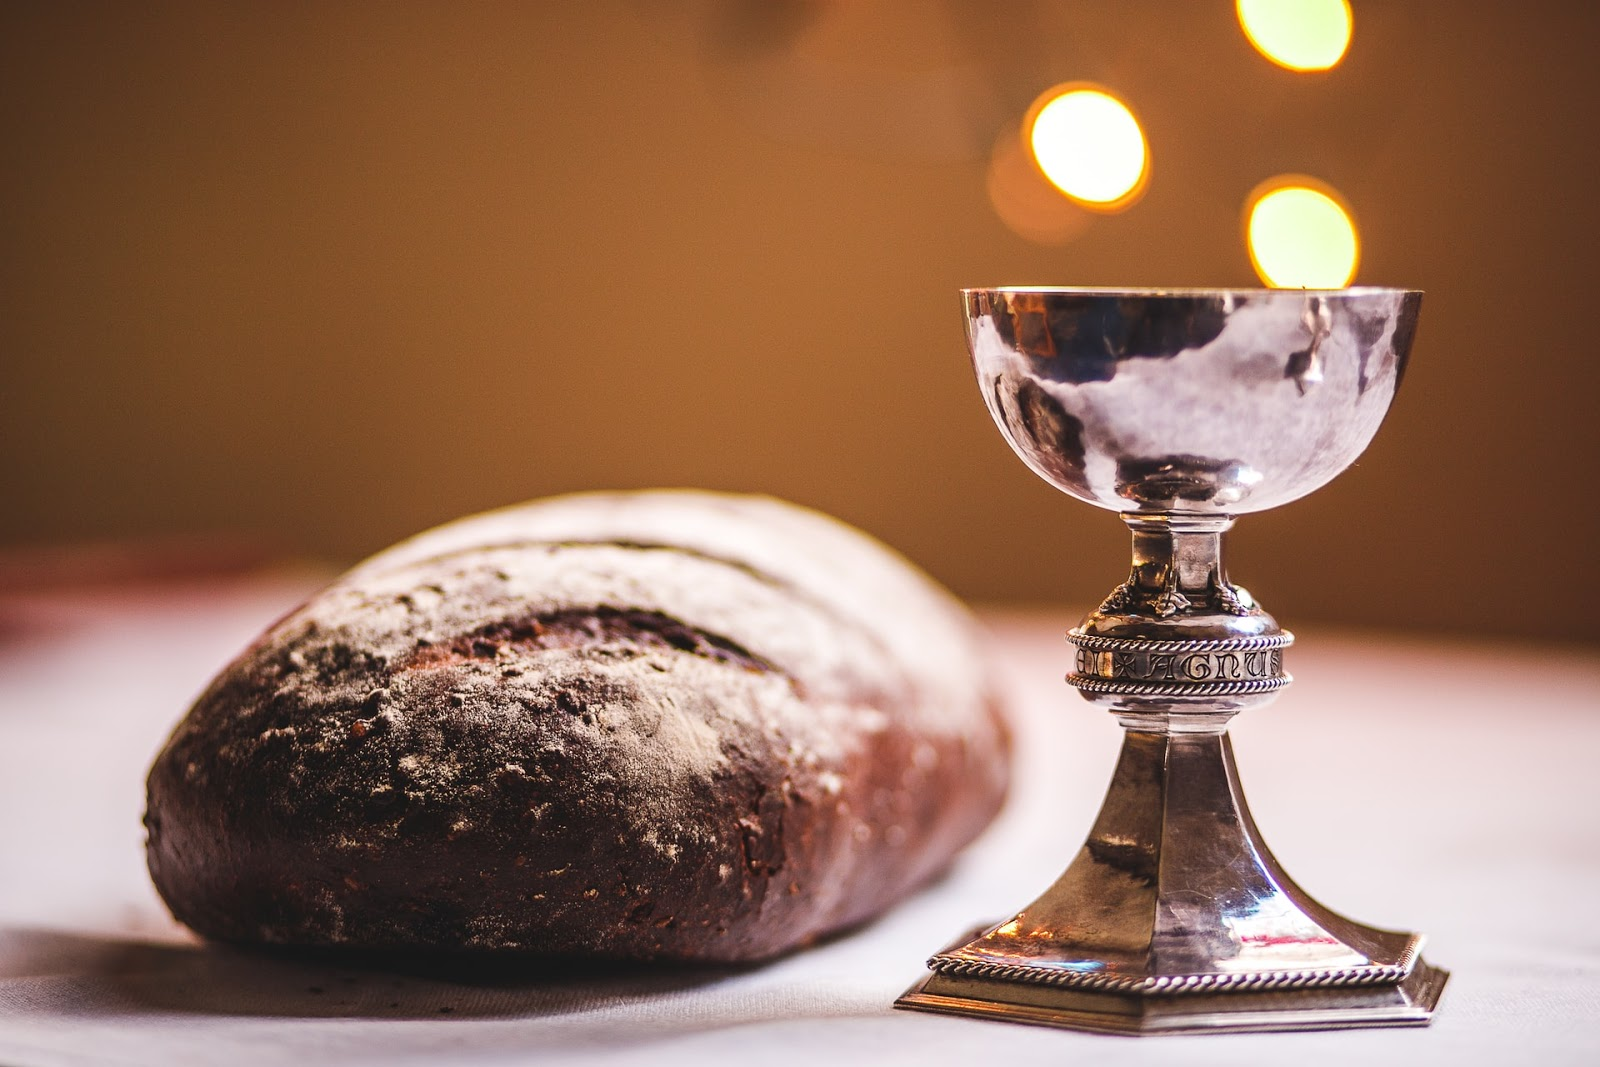 Learn about the Lord's supper prayer with pray.com